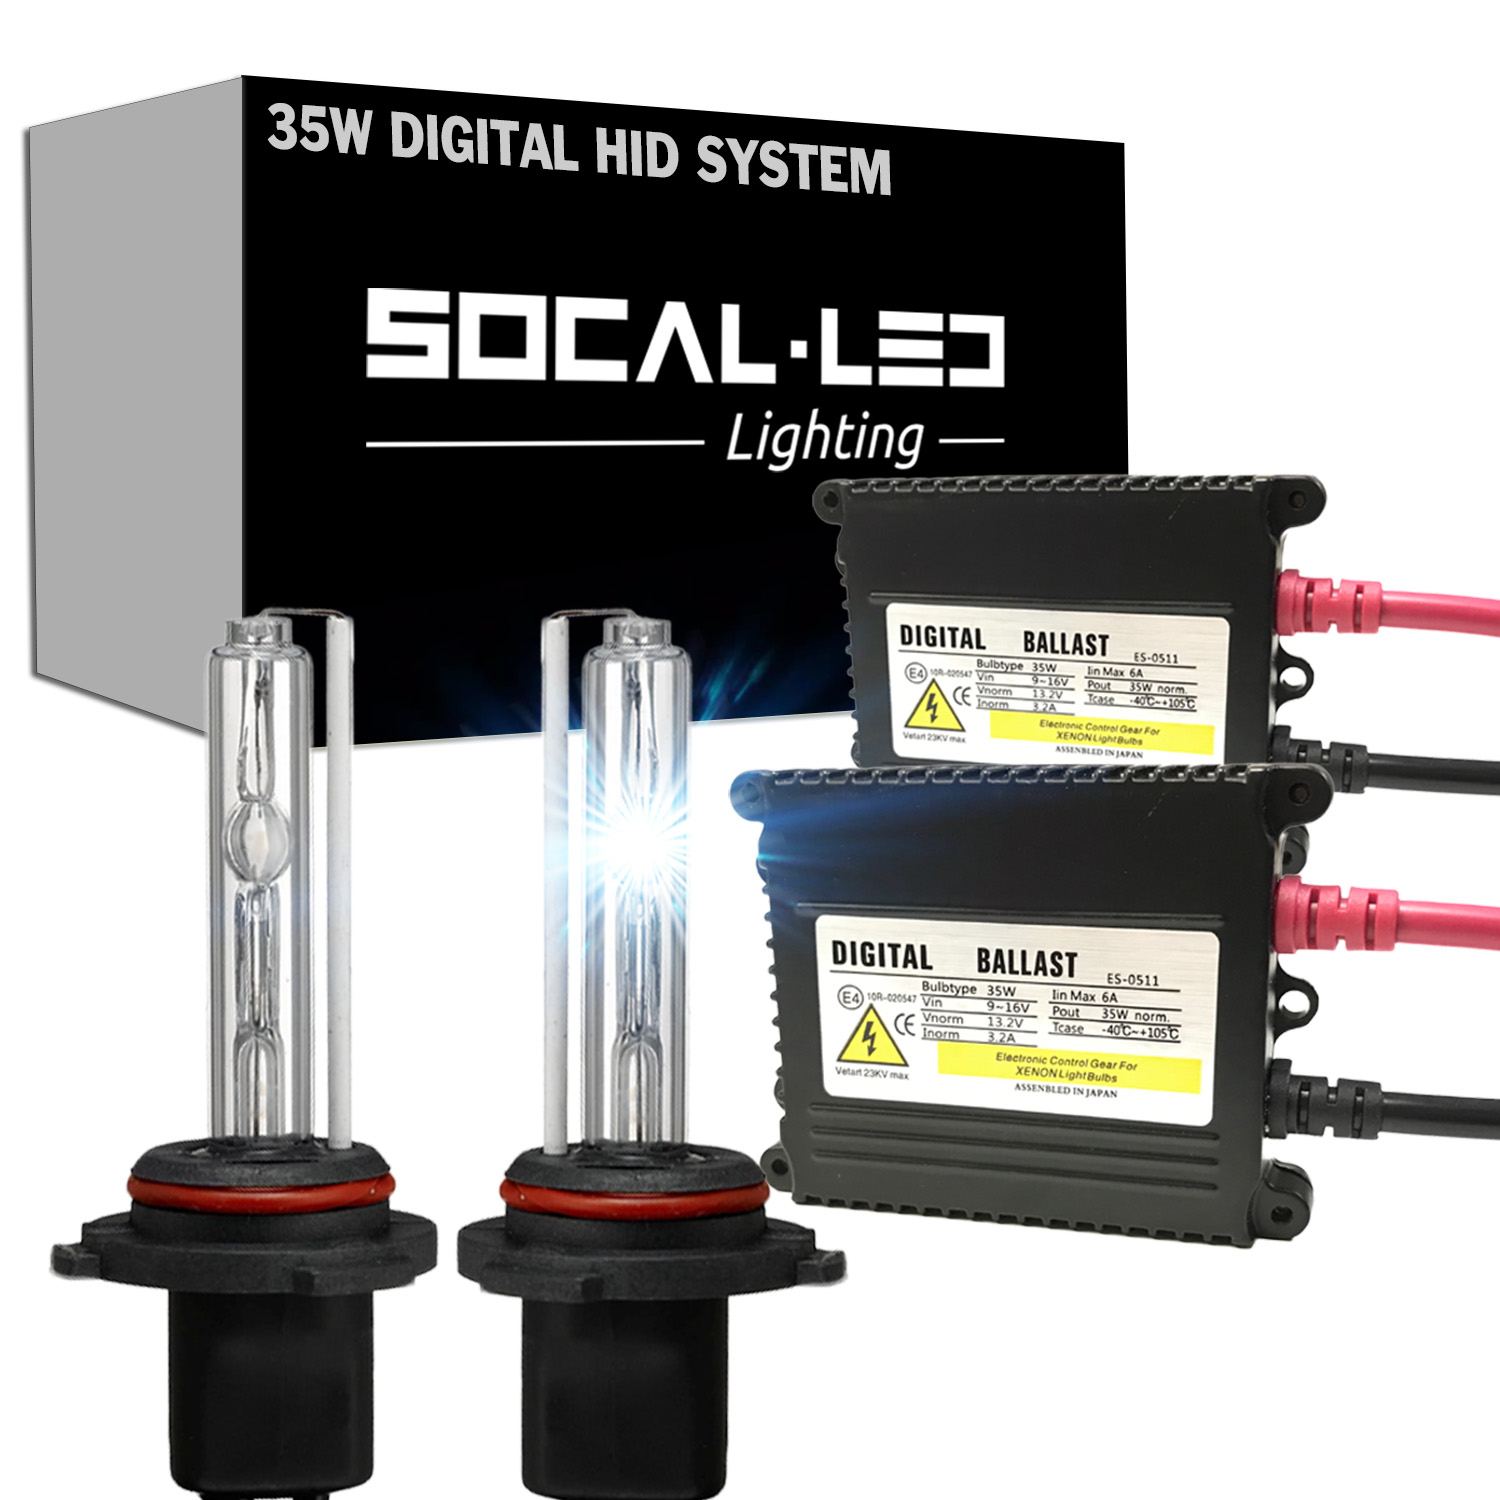 Details About Socal Led 9007 Hid Light Kit Upgrade Dc 35w Ballast Bright Headlight Replacement